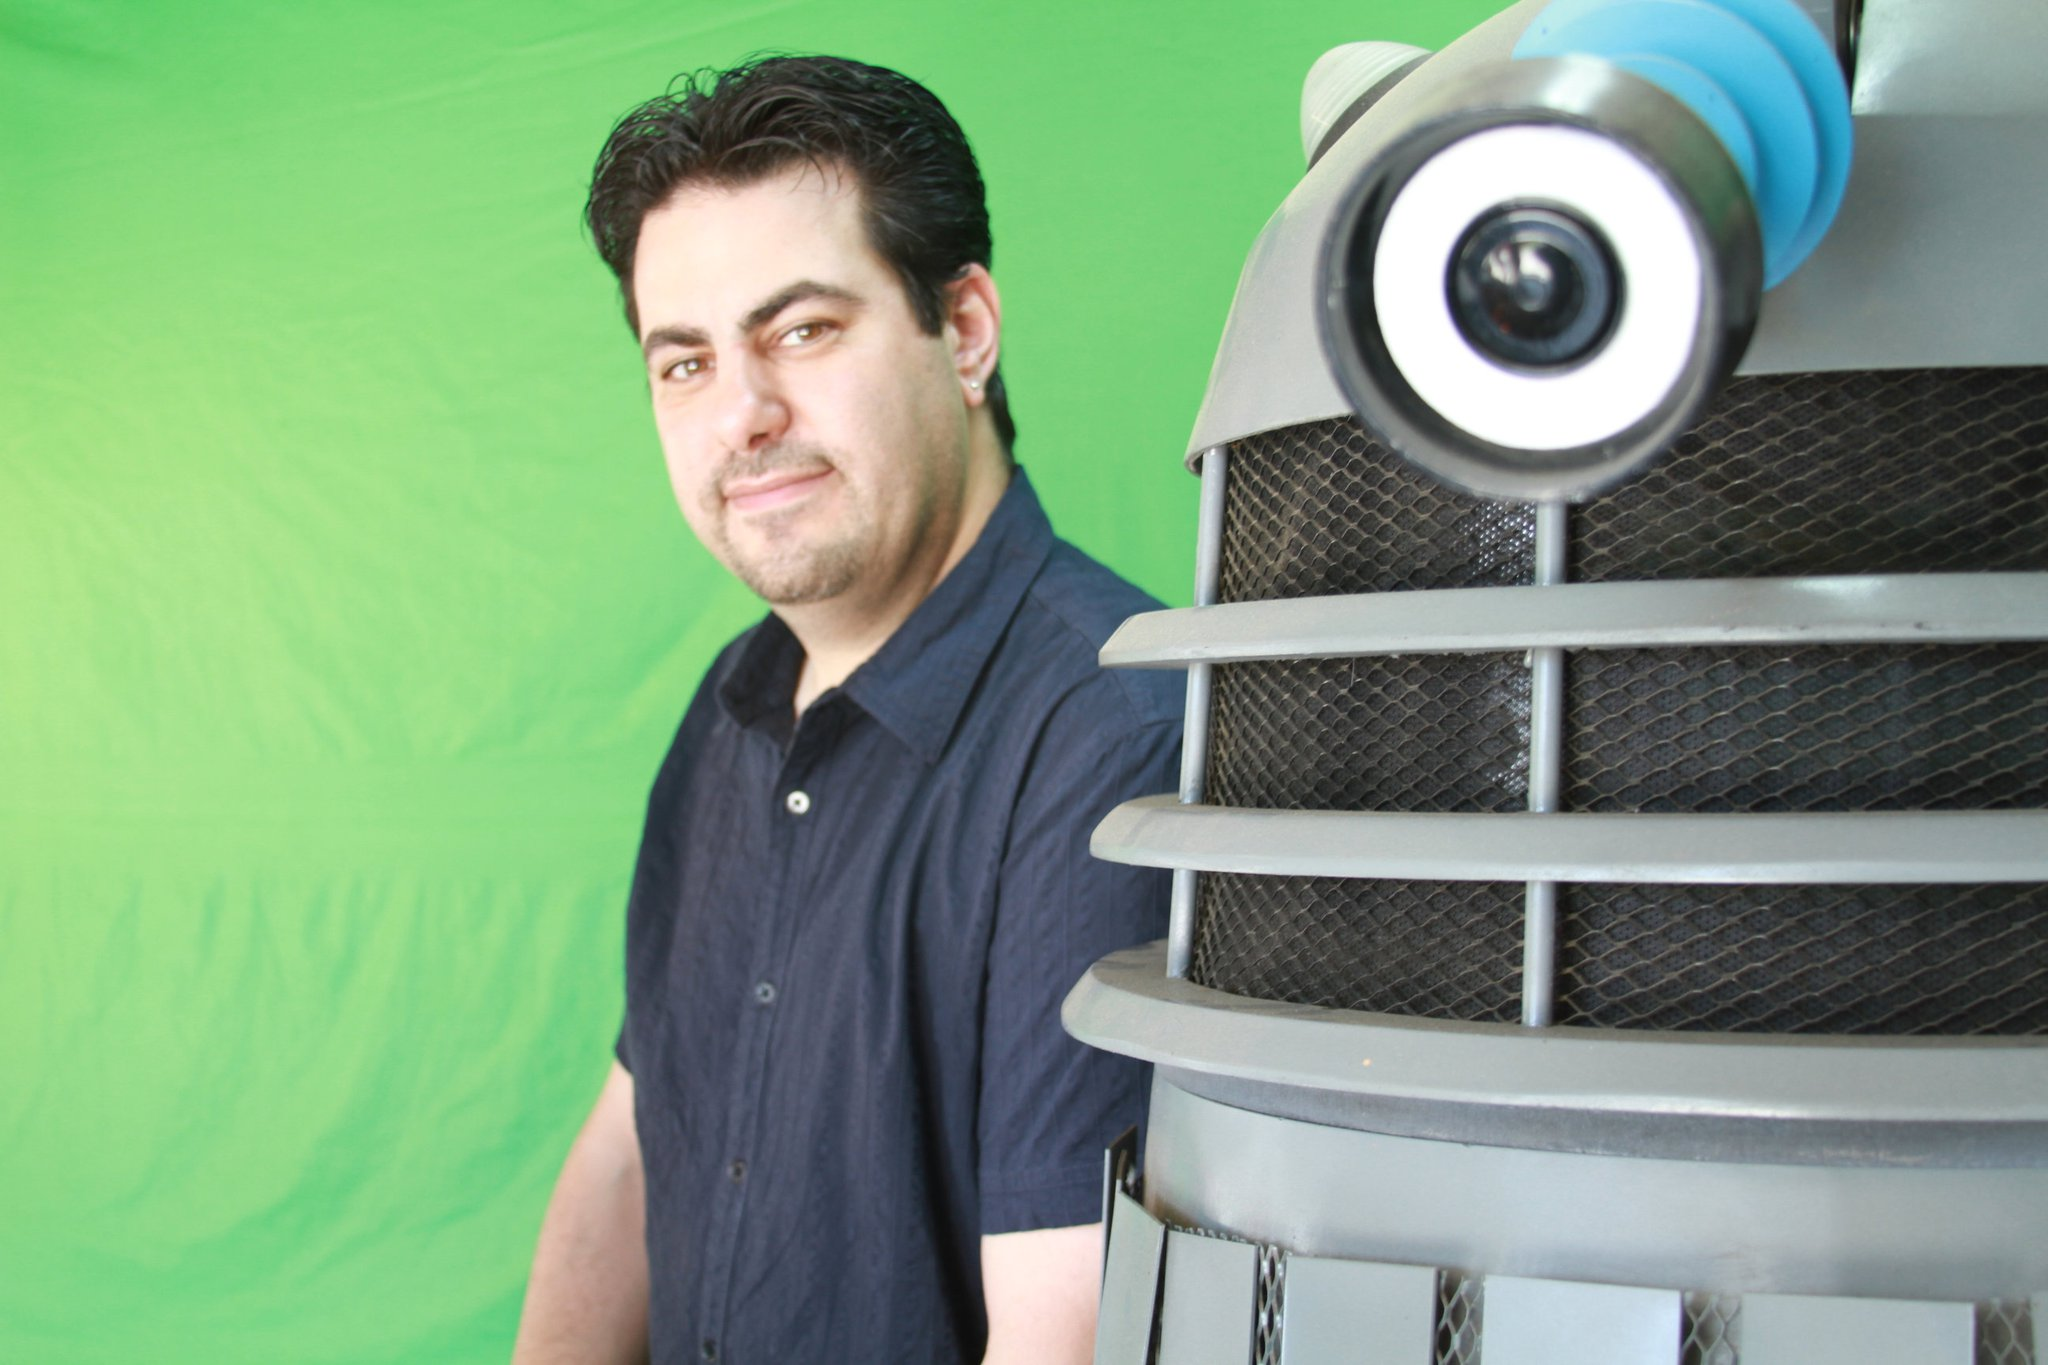 Paul Salamoff Master of the Daleks